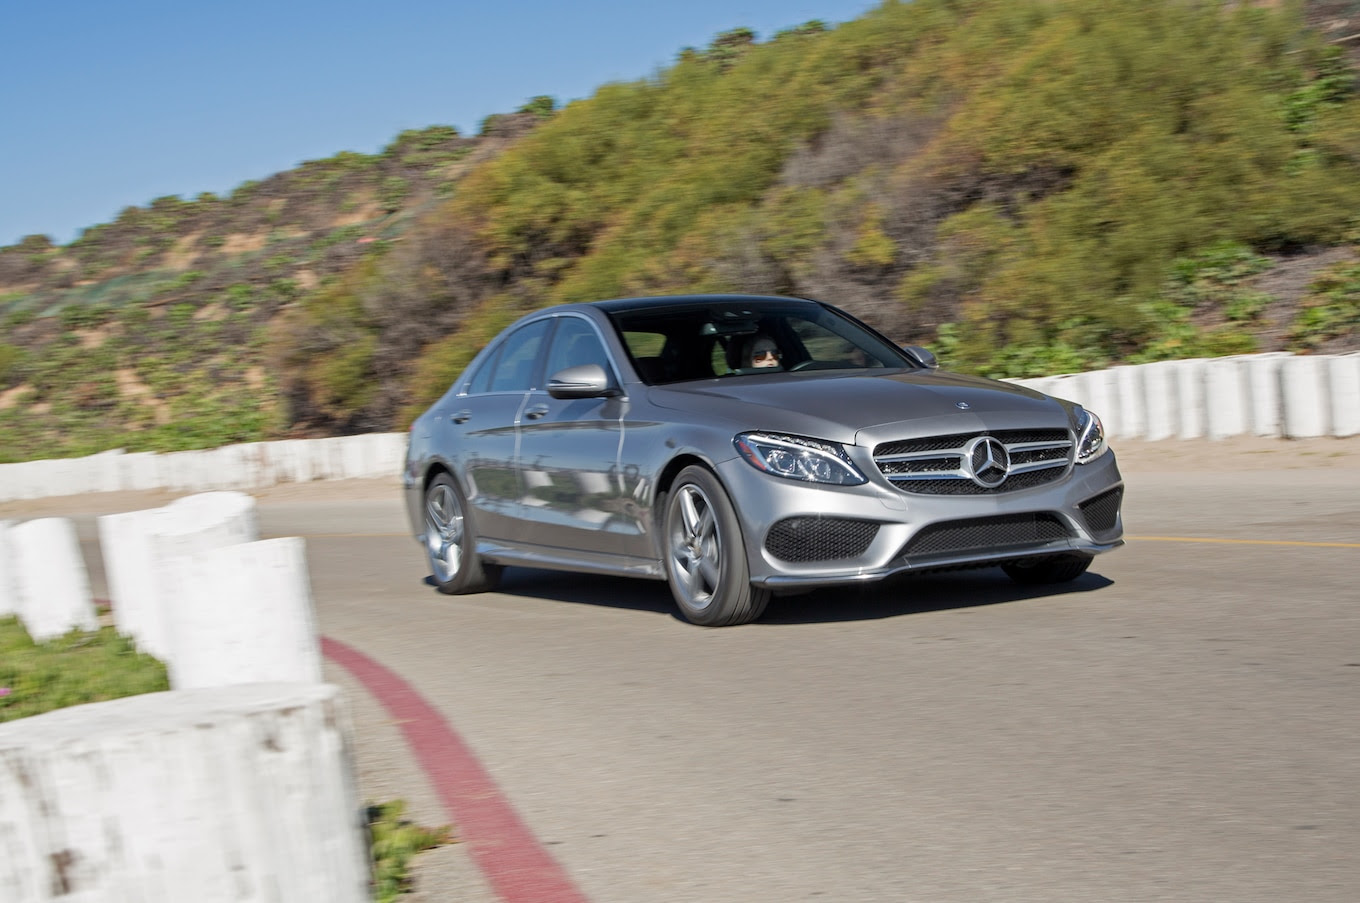 2016 Mercedes-Benz C300 RWD First Test - Motor Trend